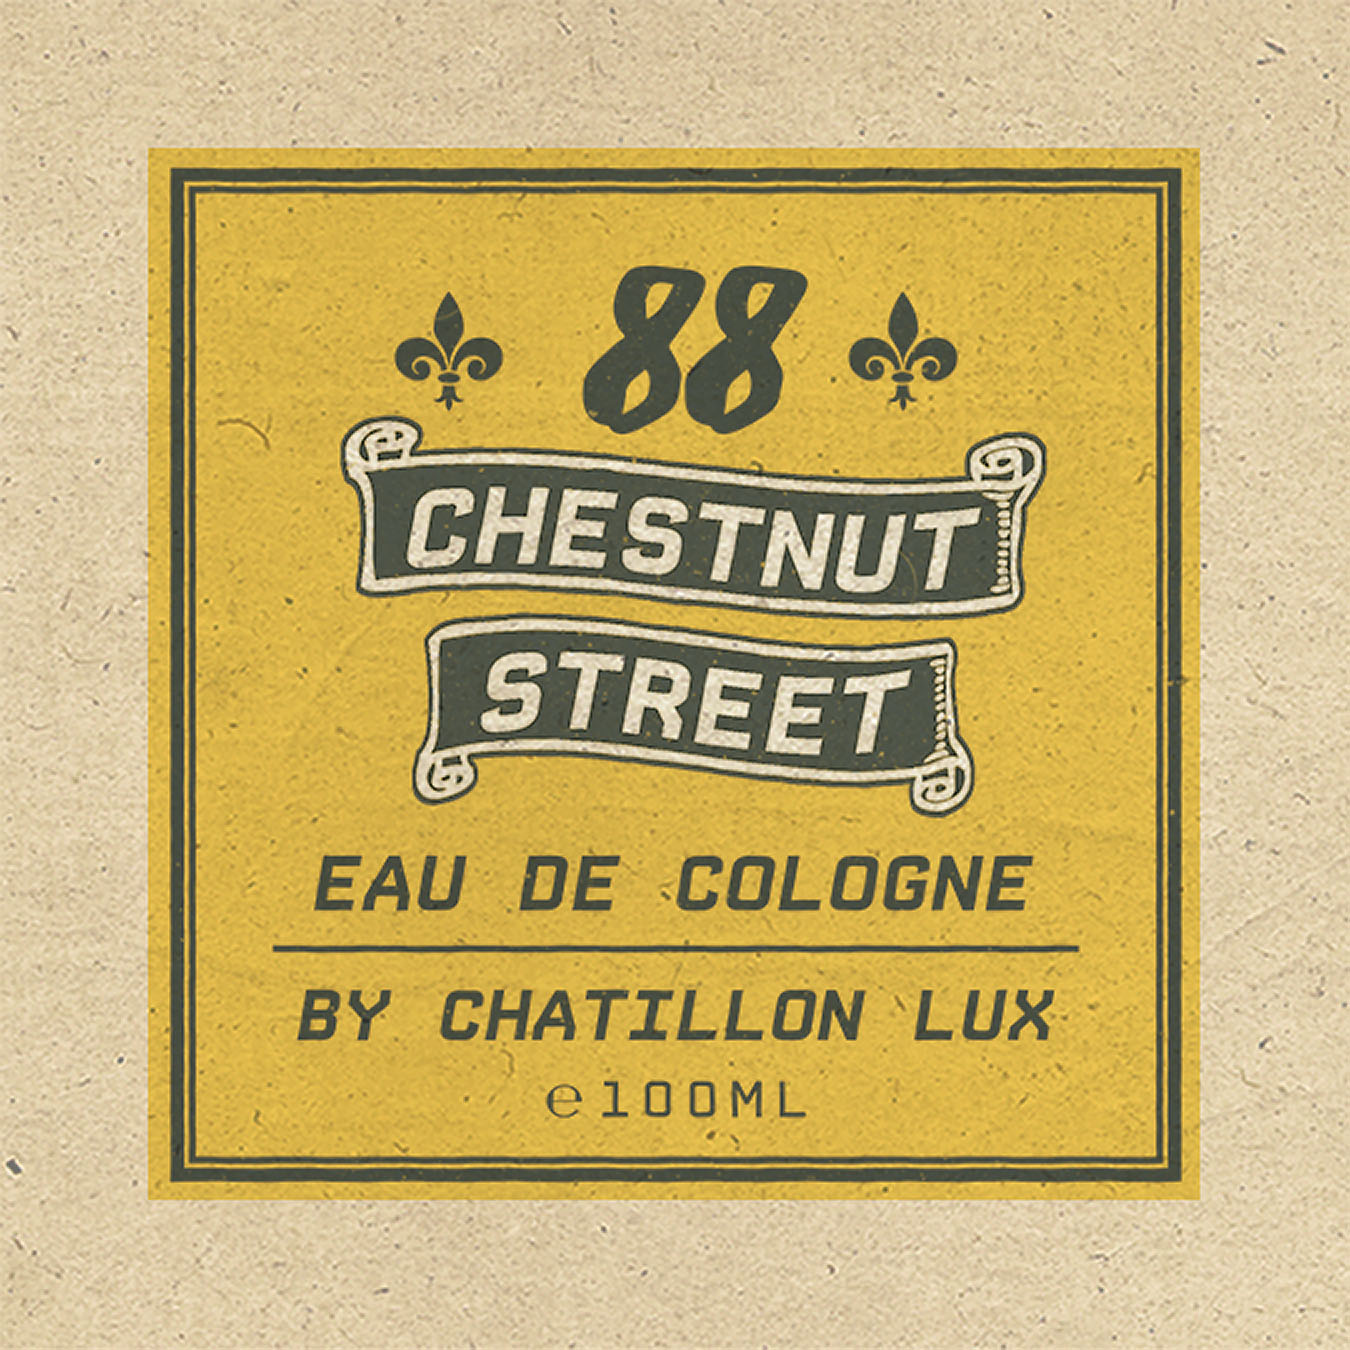 Chatillon Lux - 88 Chestnut Street